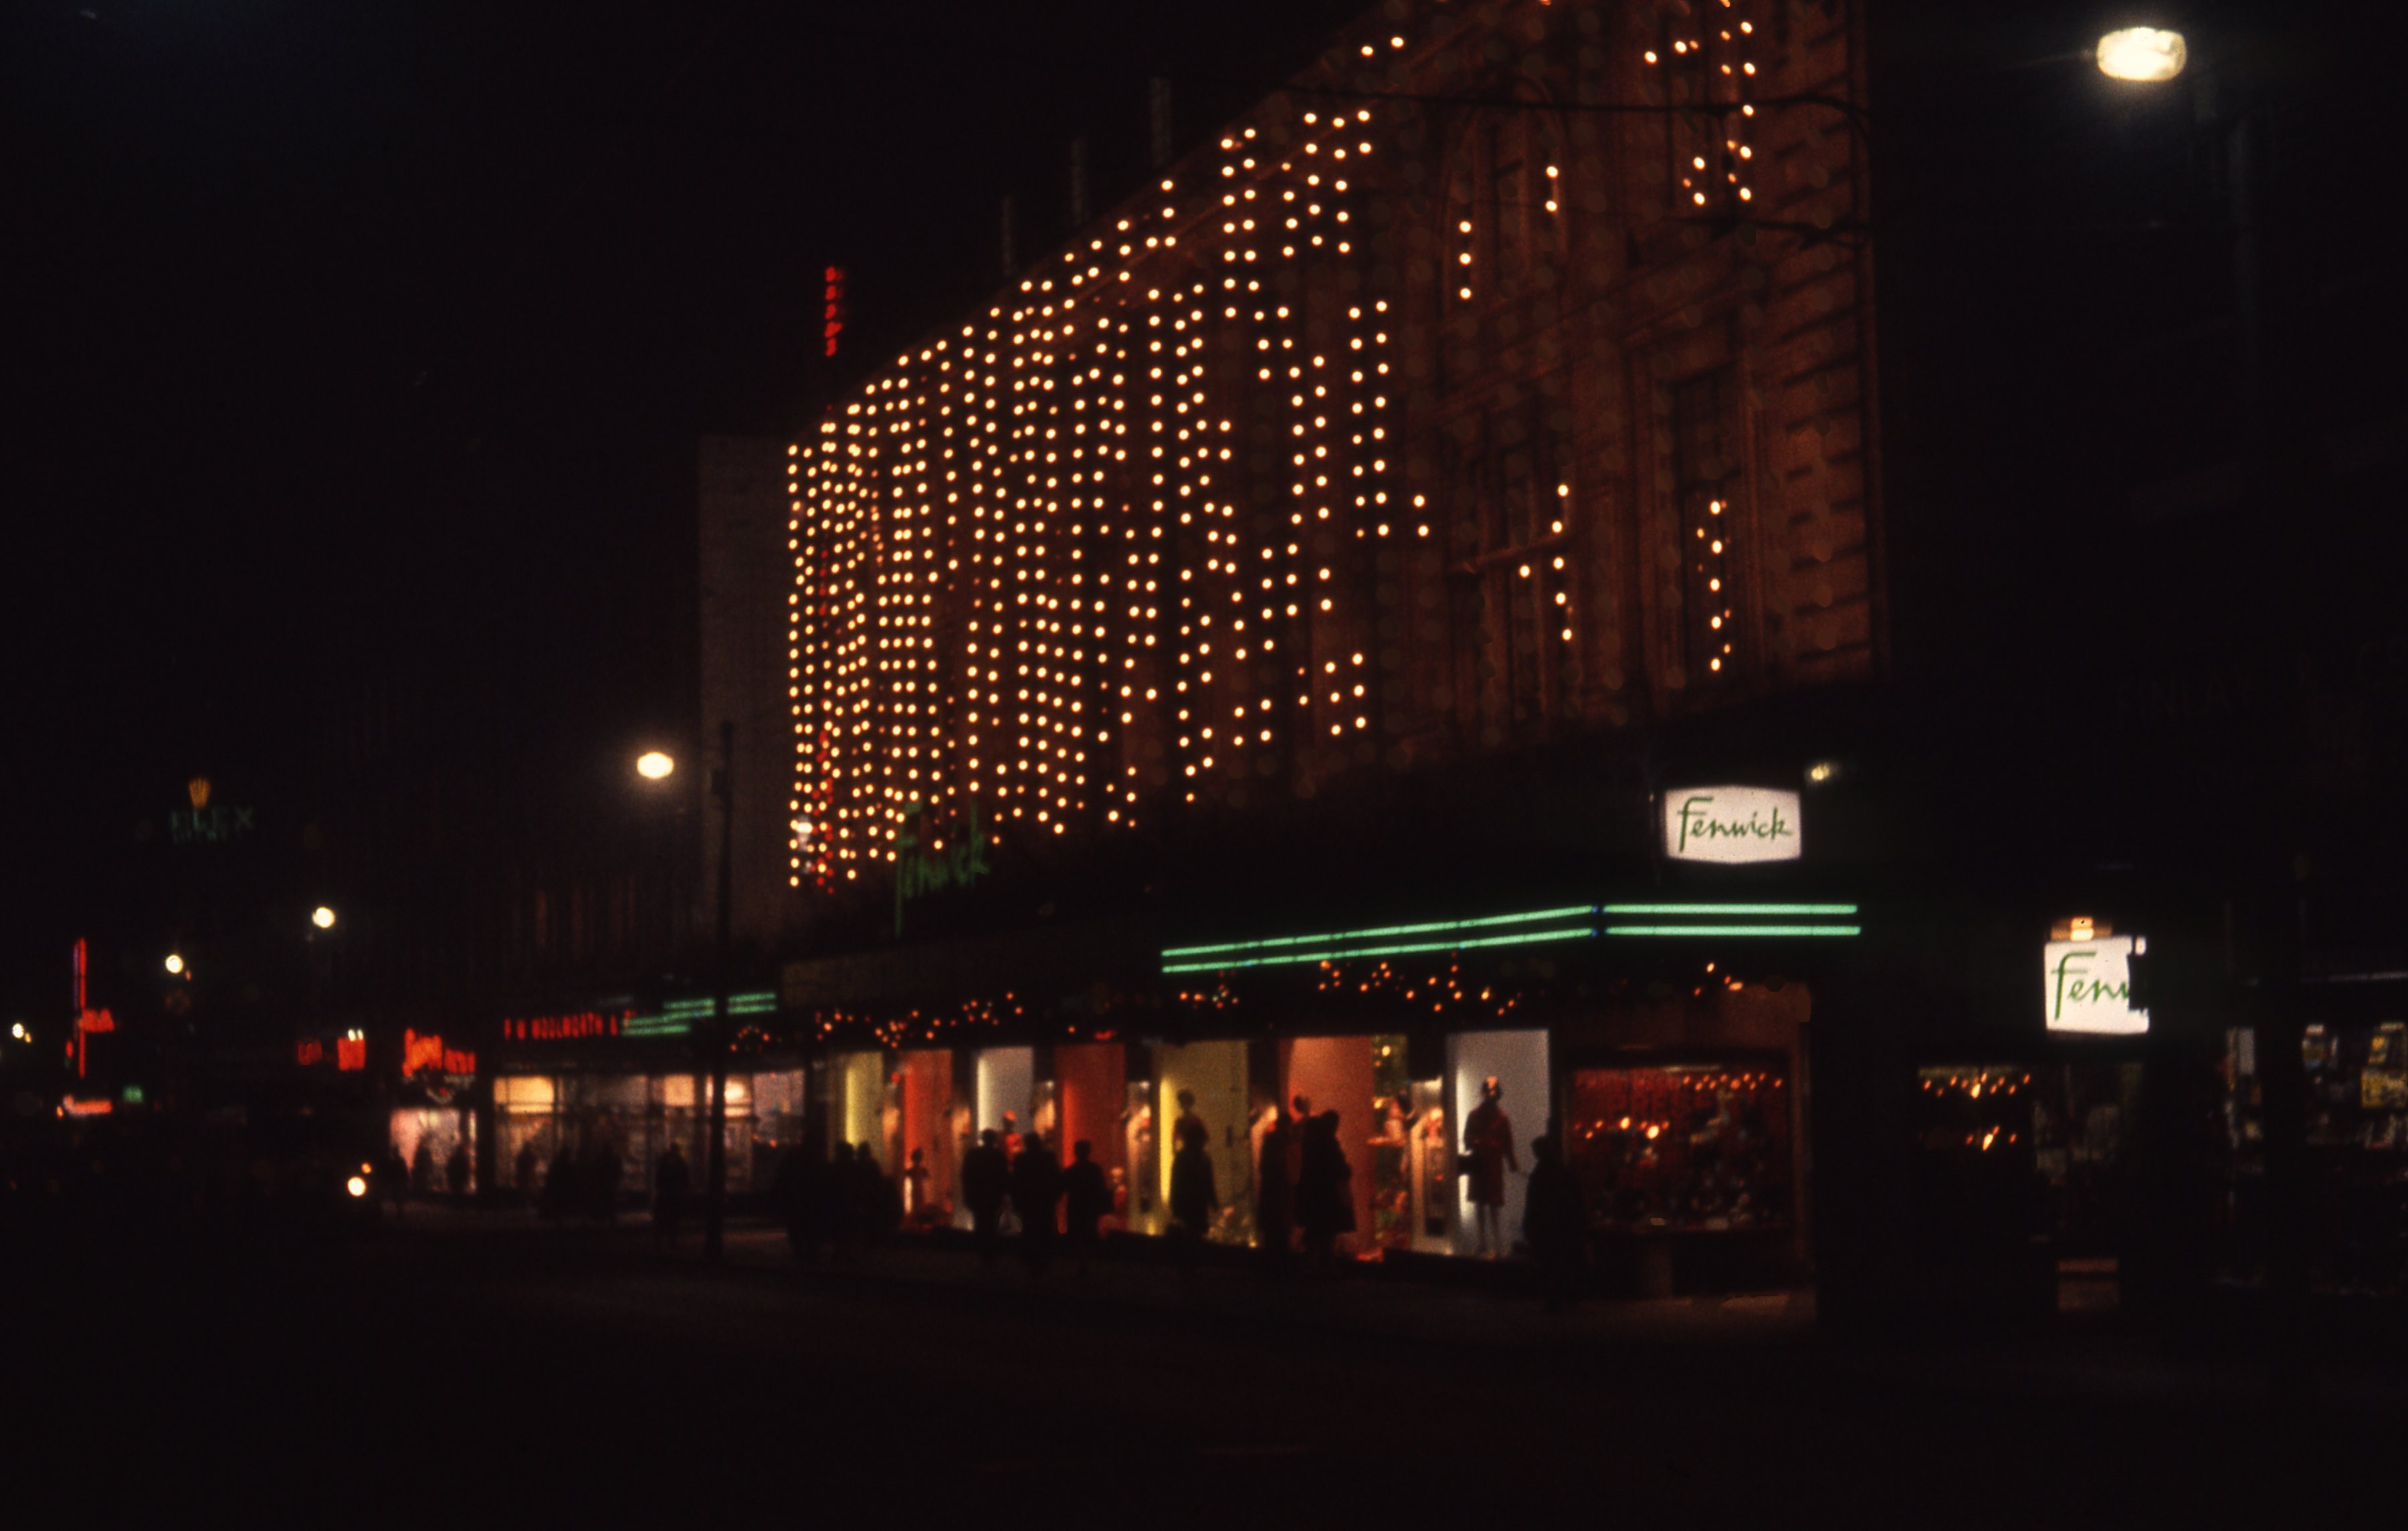 It shows the festive lights of Fenwicks department store in Newcastle upon Tyne. This is a 35mm slide. It was taken in 1964.